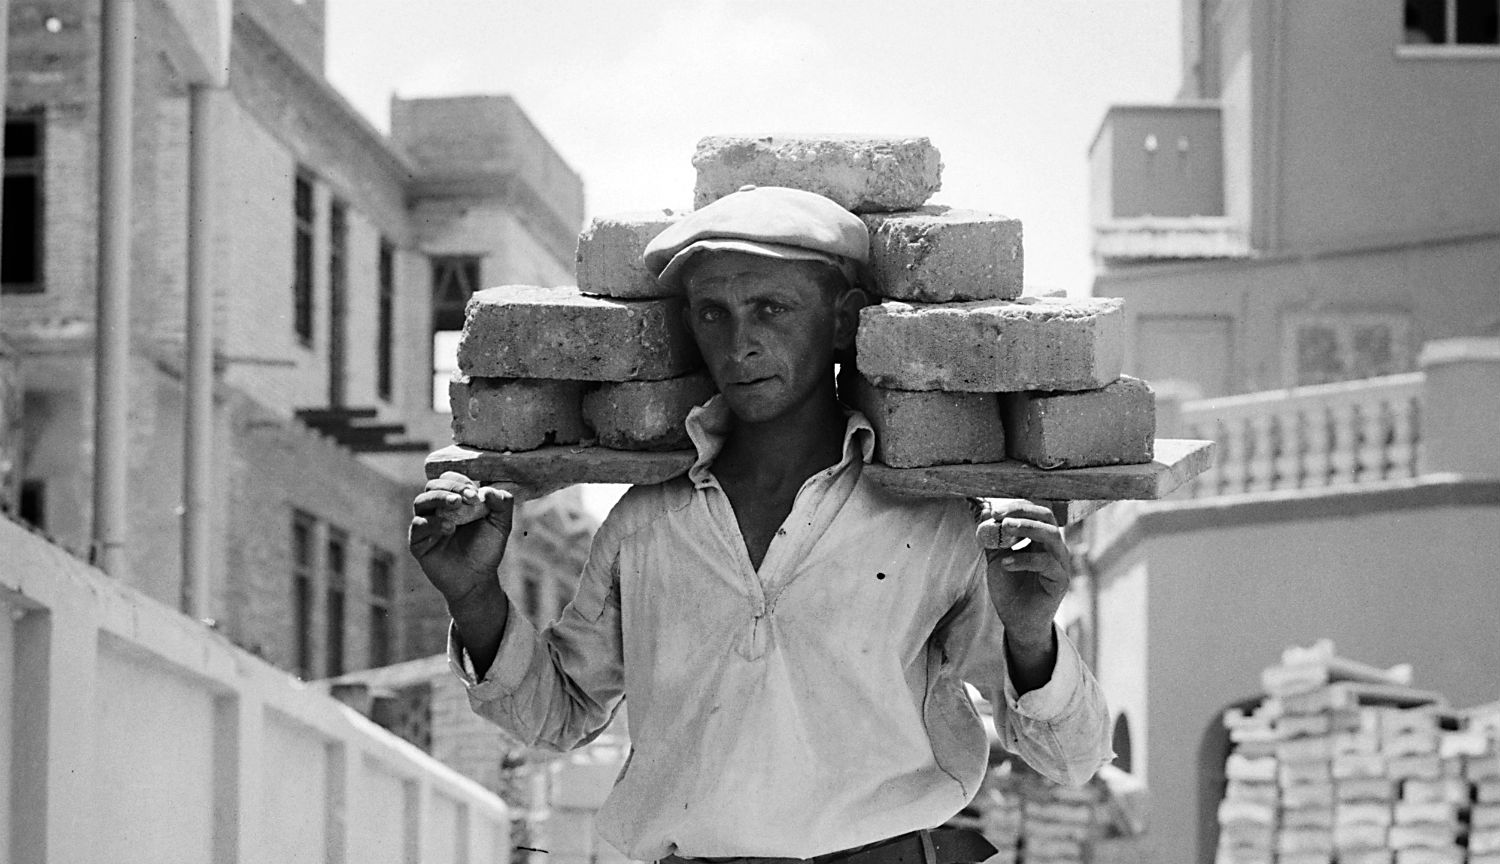 A man carrying bricks in 1920s Tel Aviv. Library of Congress.